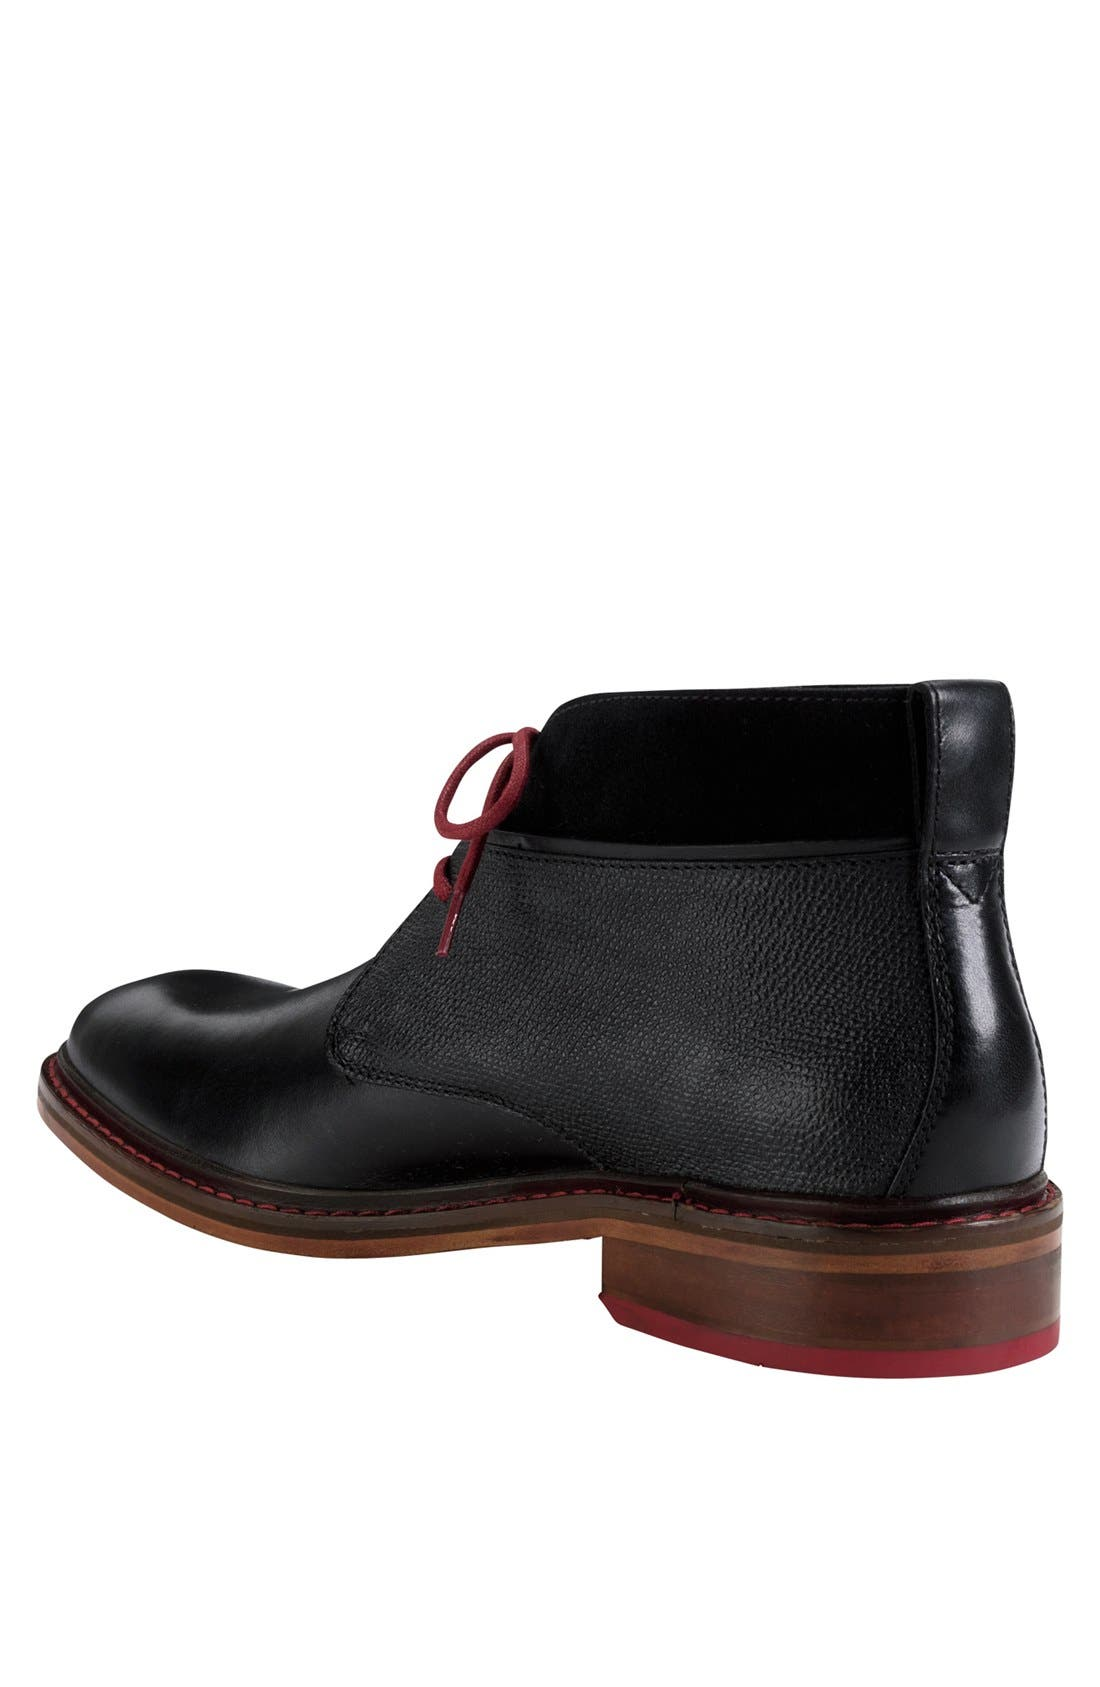 'Colton' Chukka Boot,                             Alternate thumbnail 5, color,                             BLACK